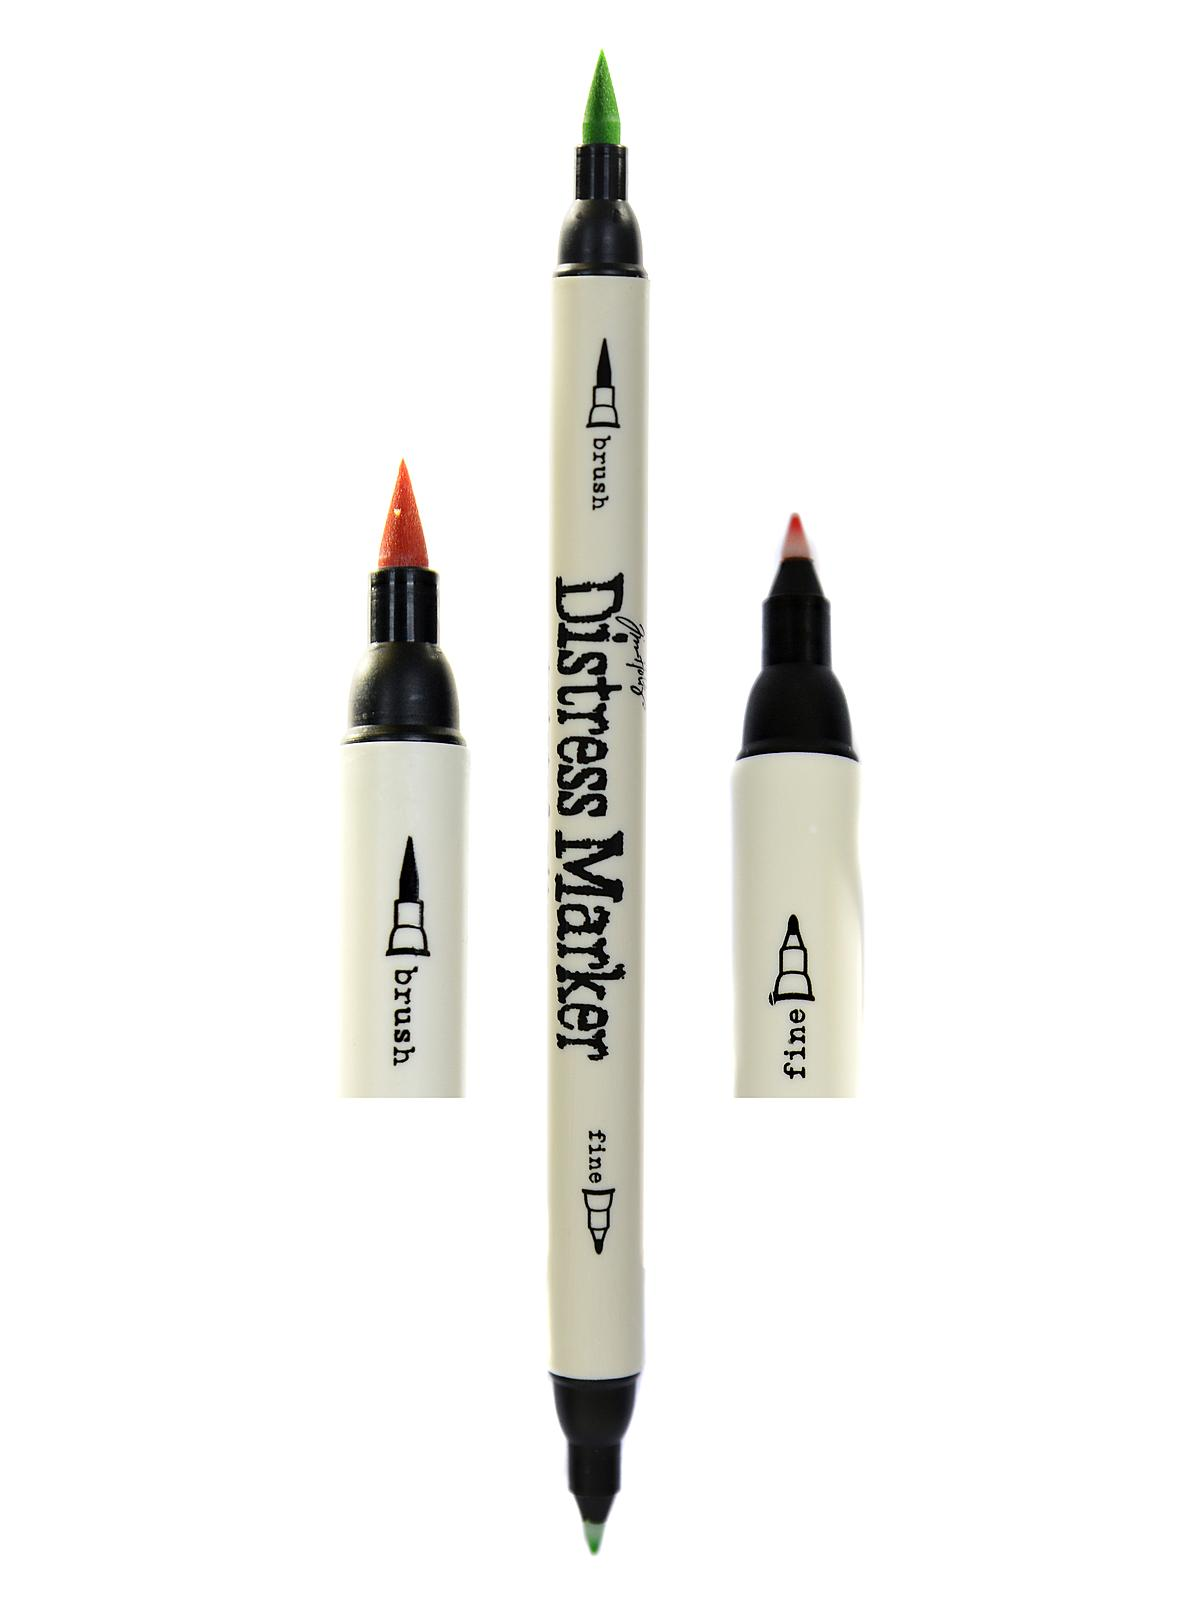 Tim Holtz Distress Markers